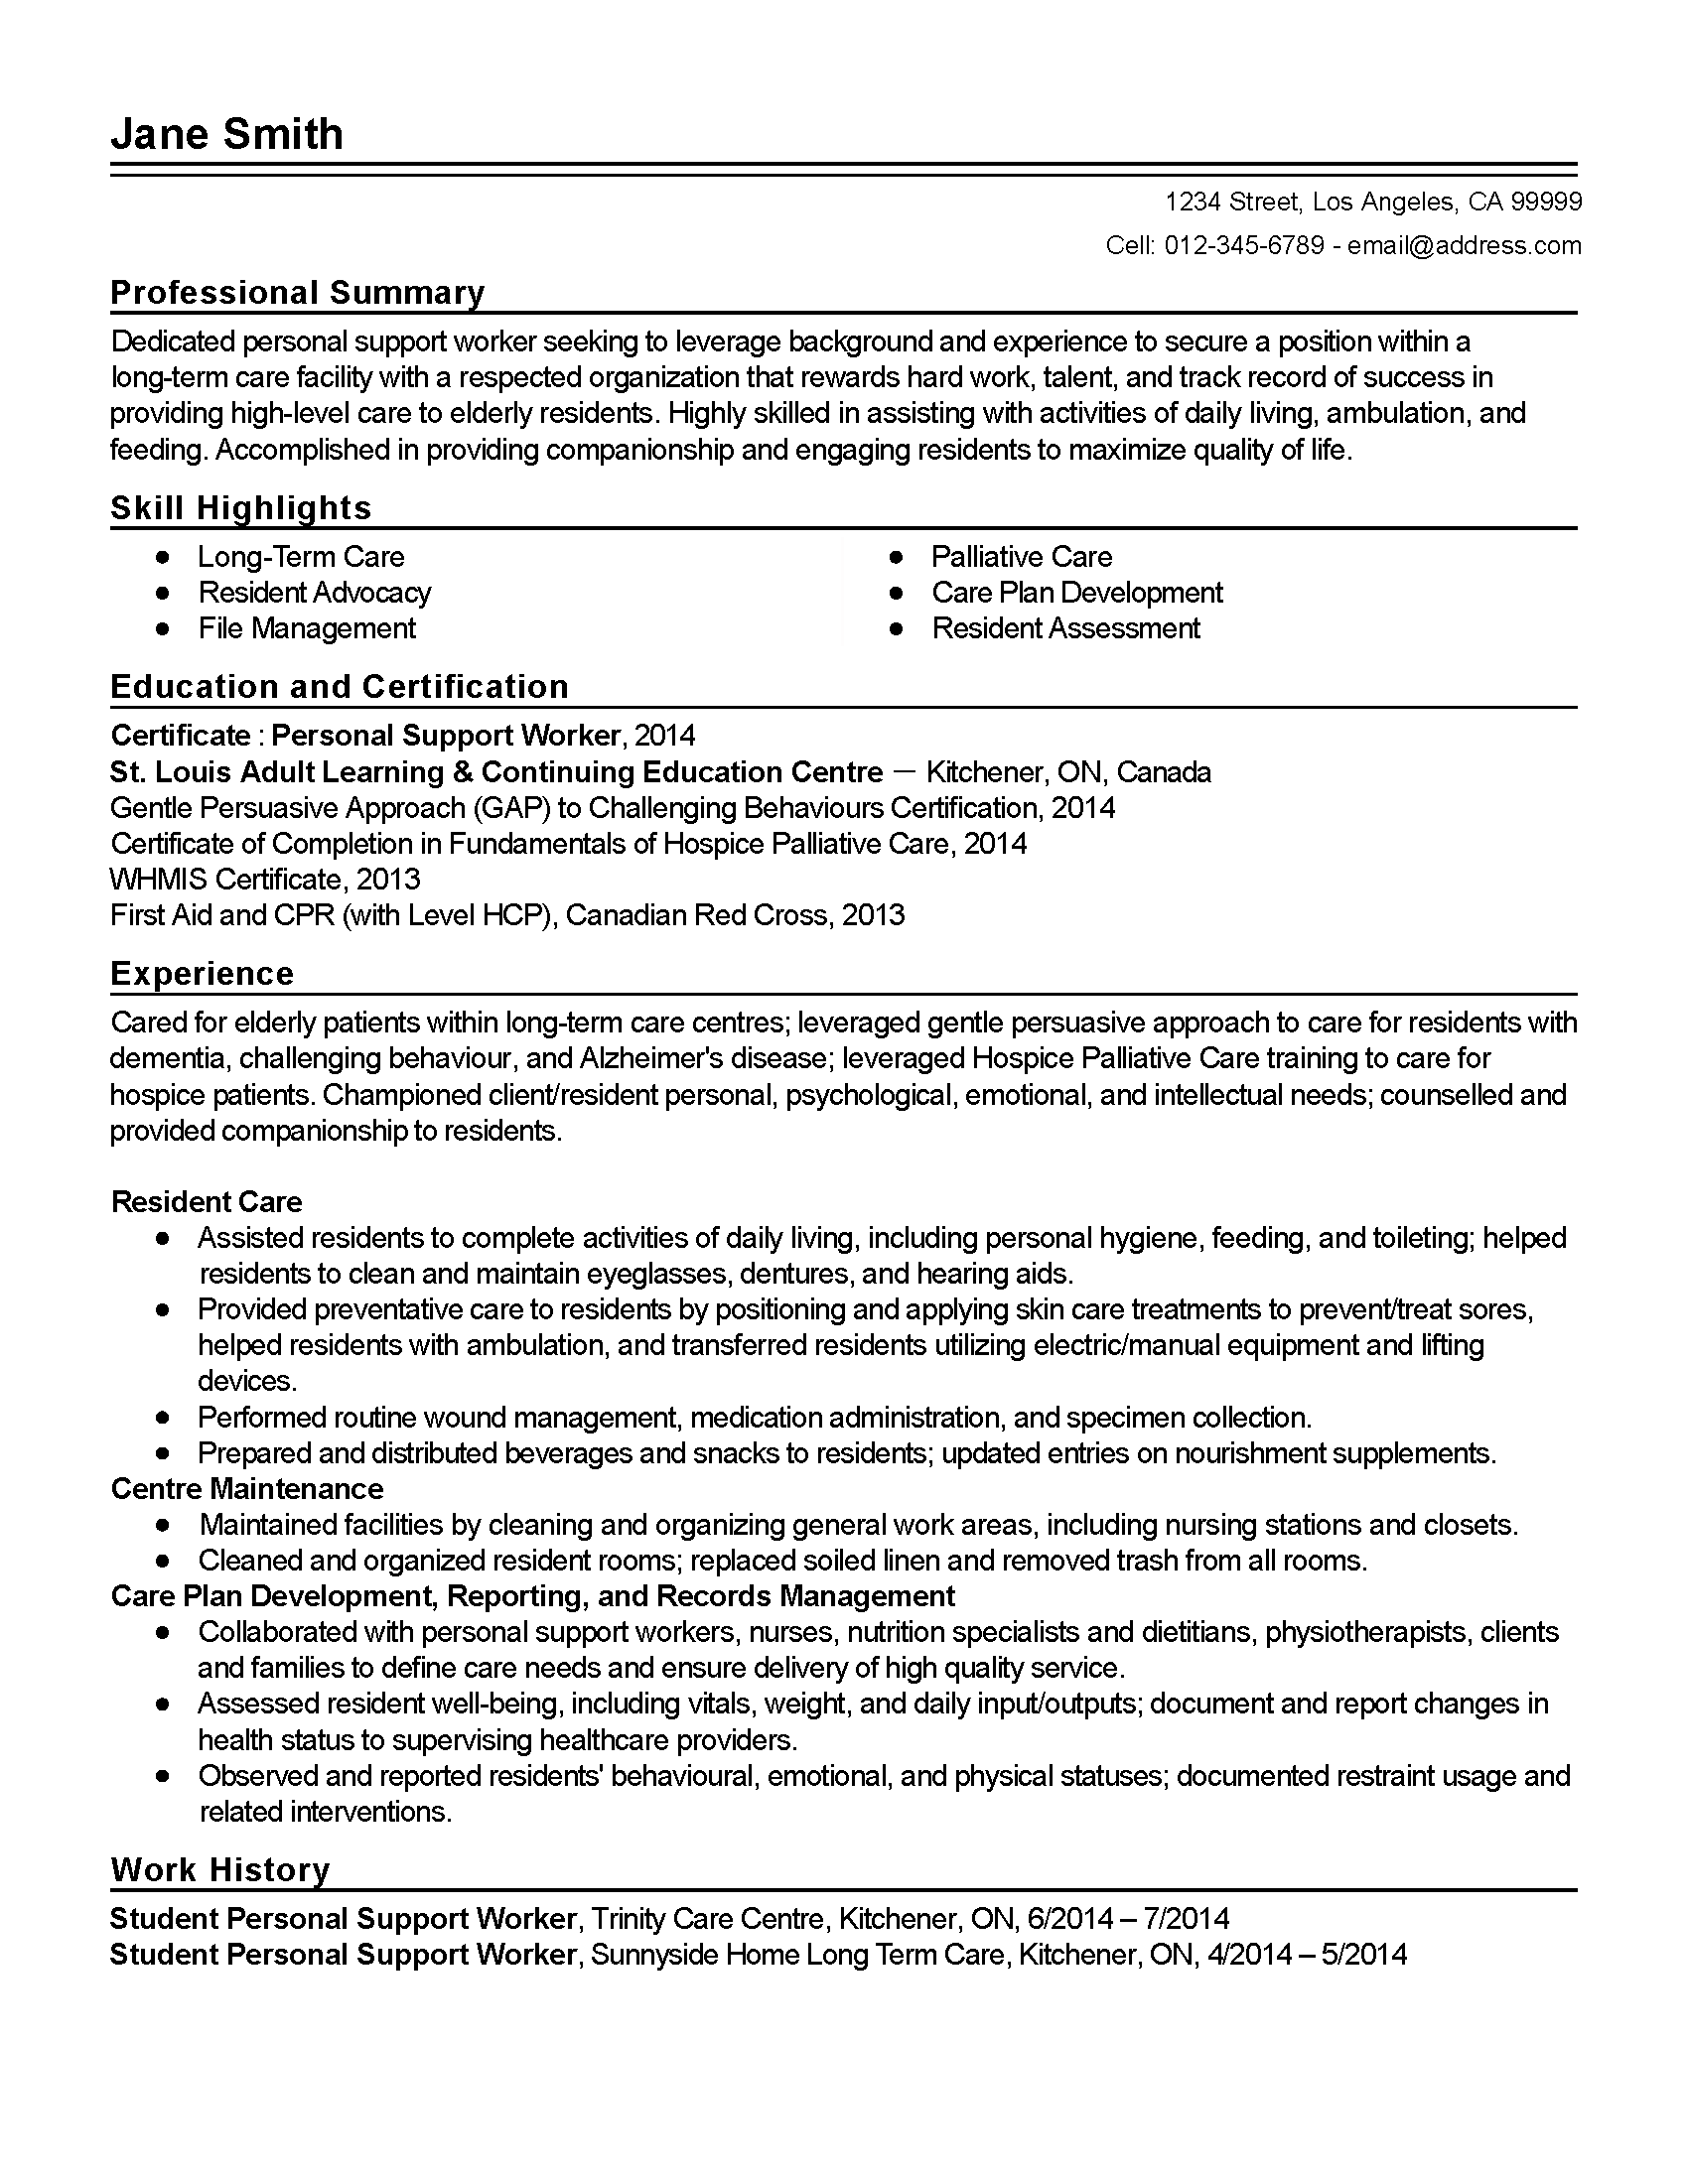 Professional Personal Support Worker Templates To Showcase Regarding Assisted Living Rules And Regulations Template